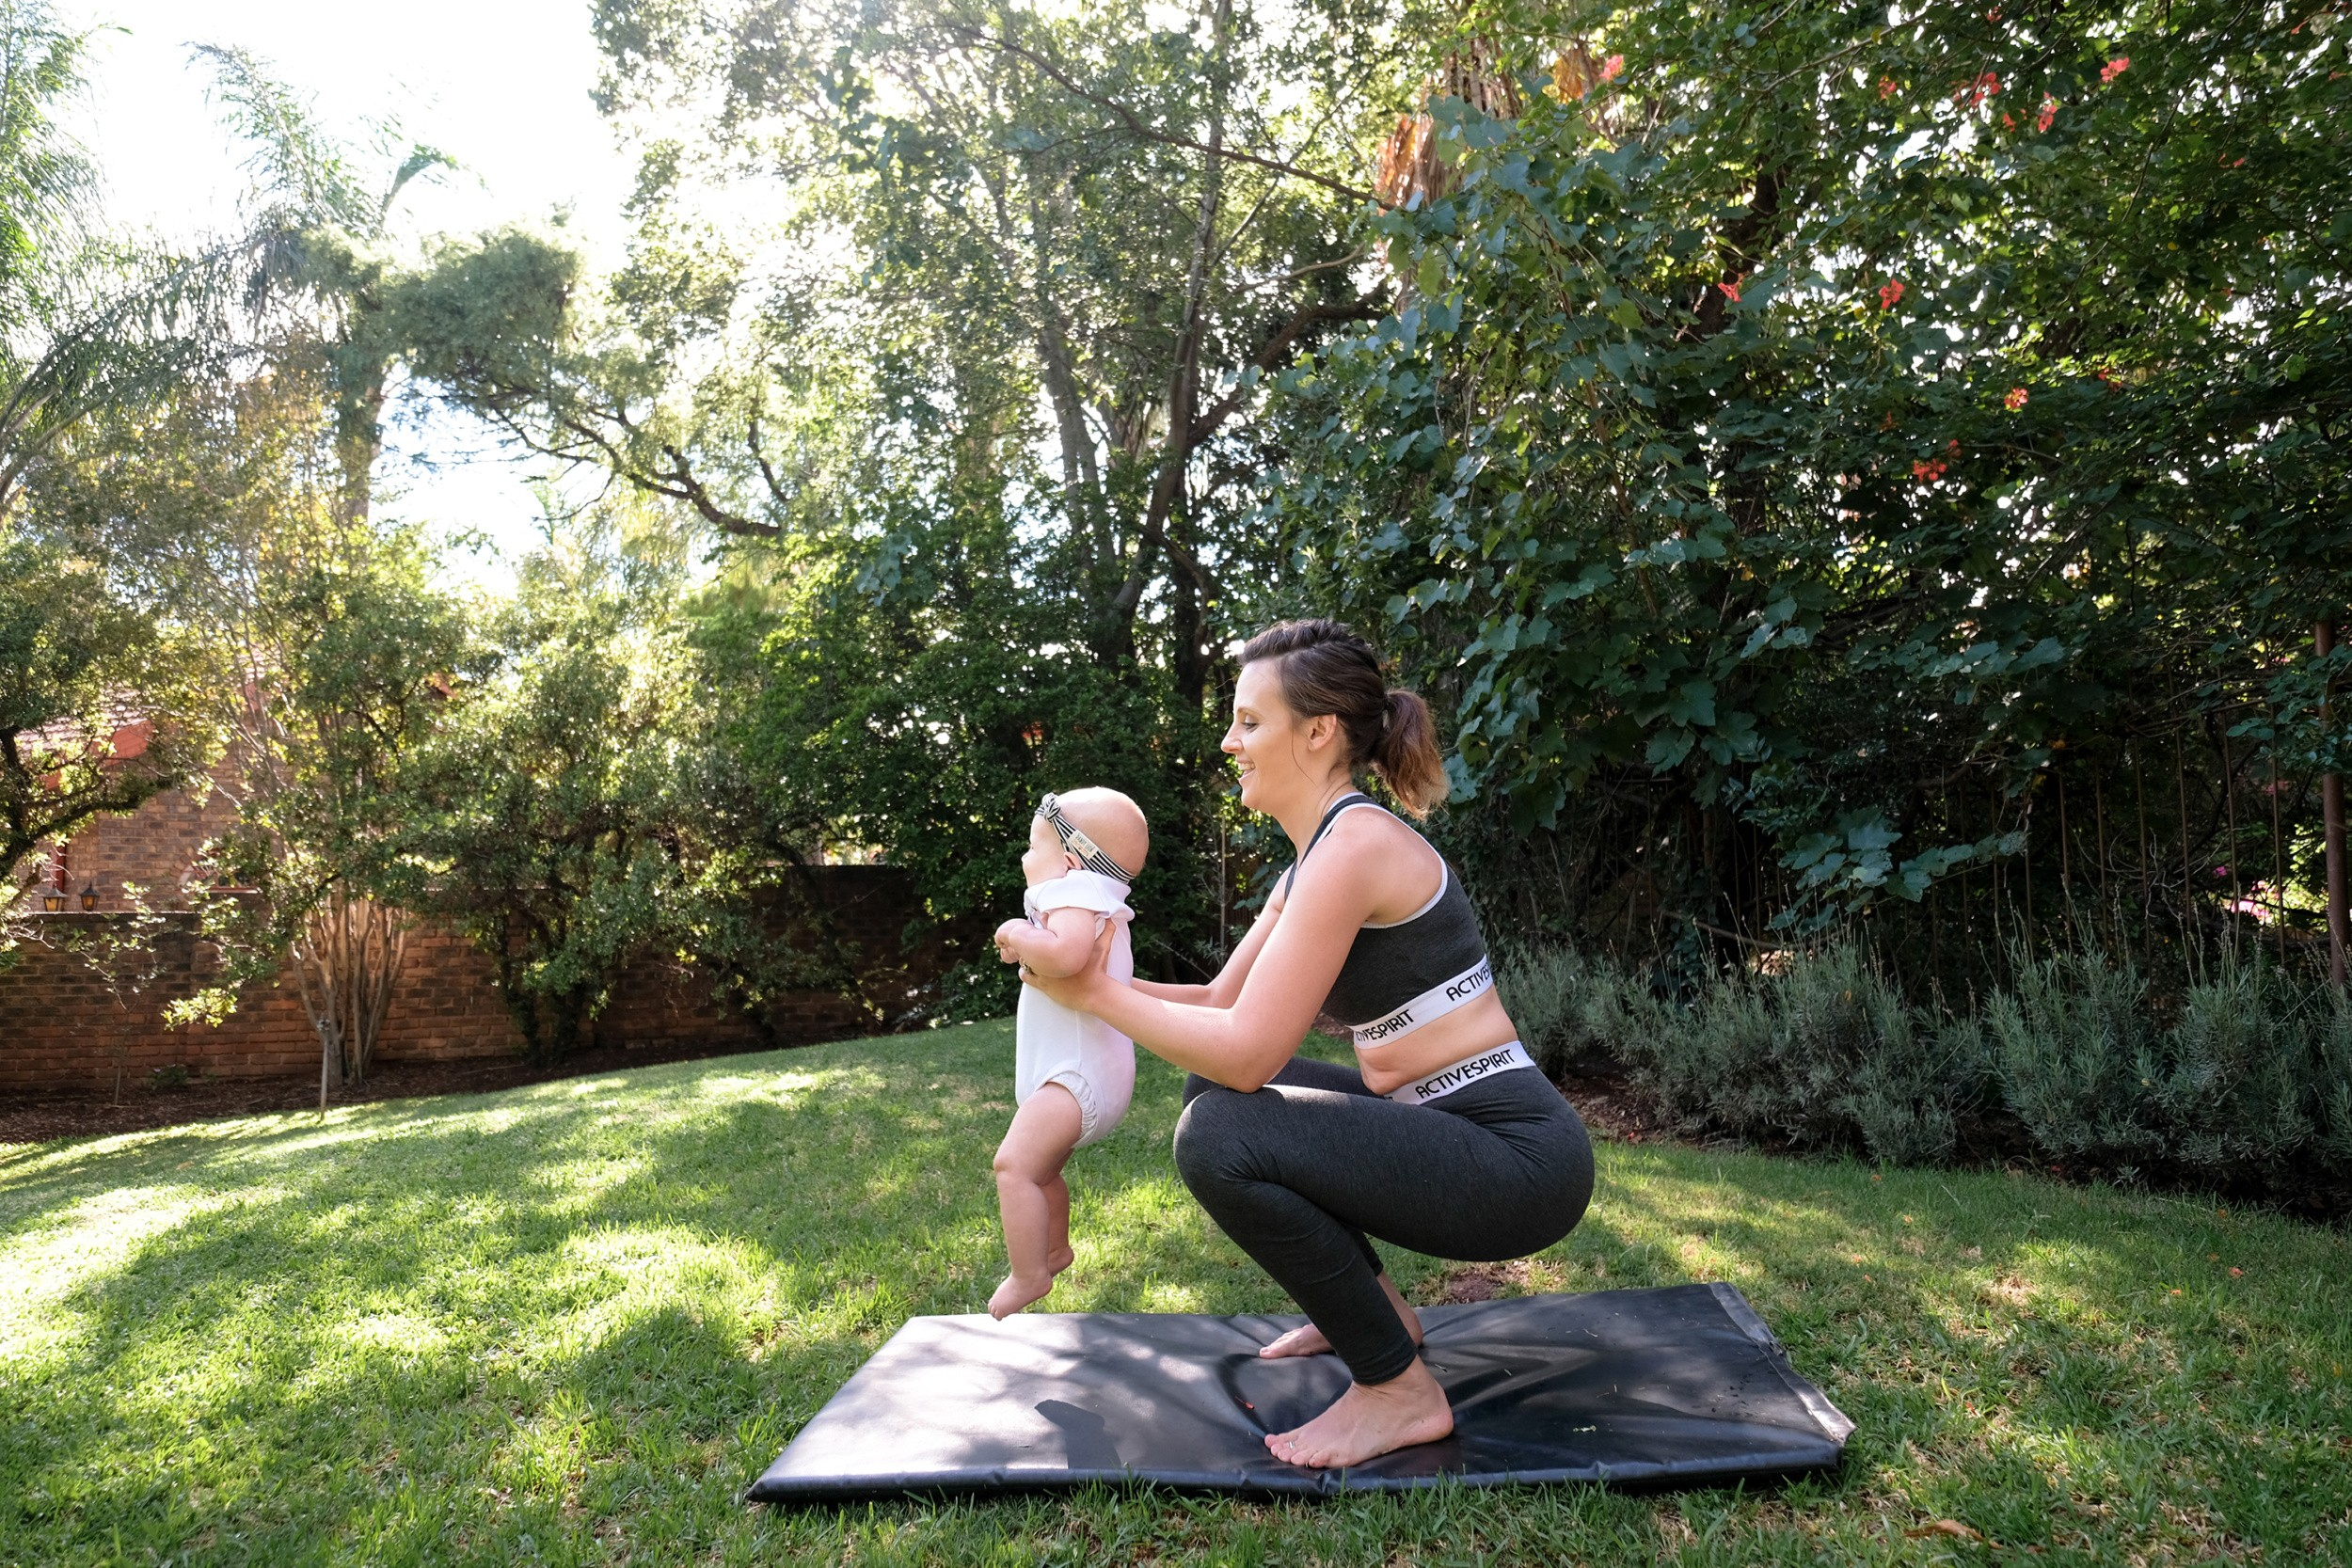 JustaMamma Mommy and Baby Fitness squat